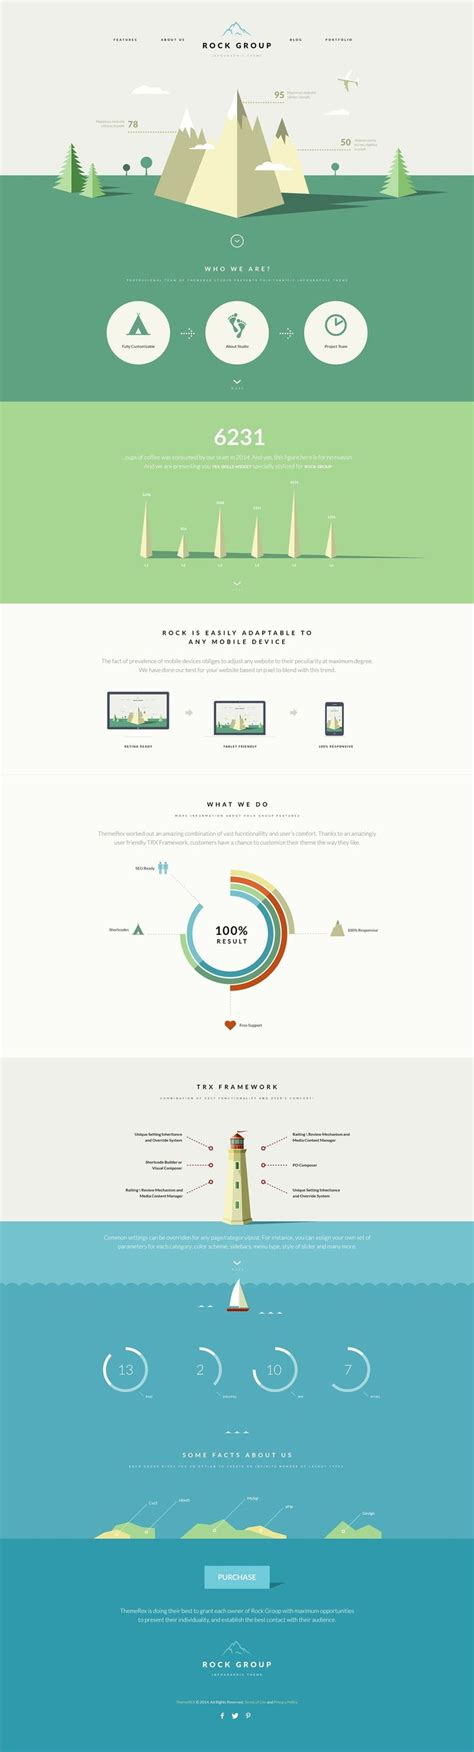 simple graphic design layout best 25 infographic exles ideas on pinterest